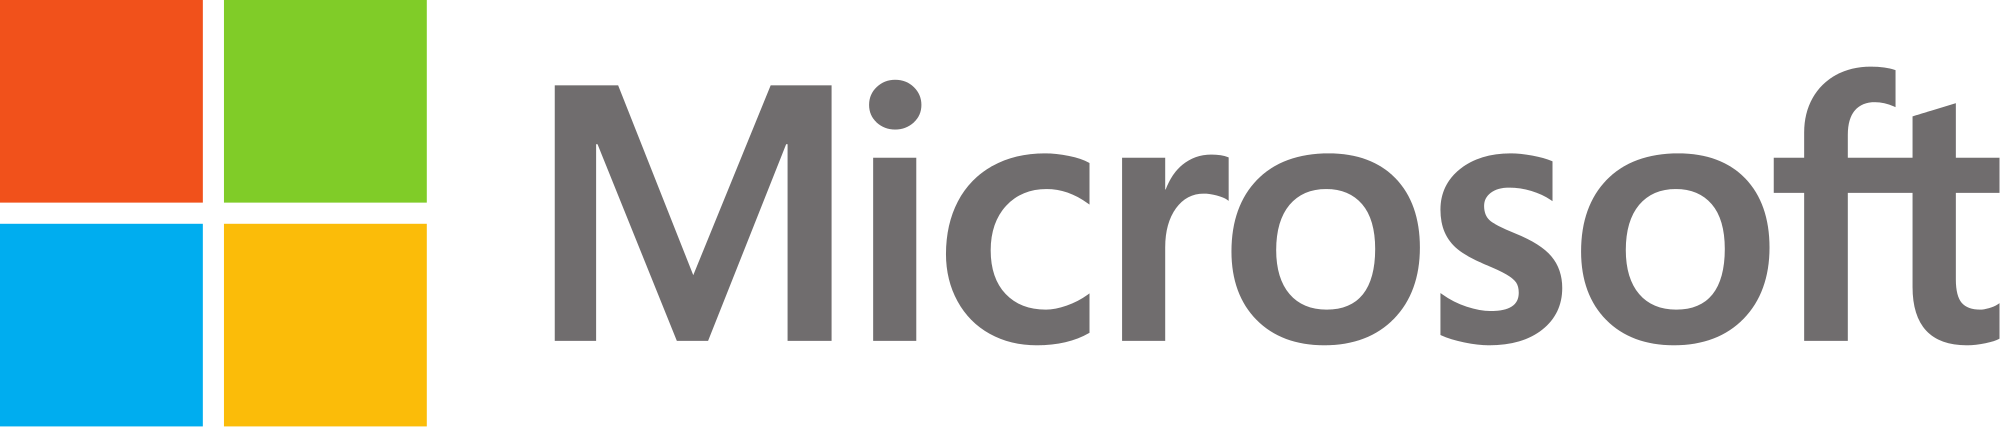 microsoft-corporation.png